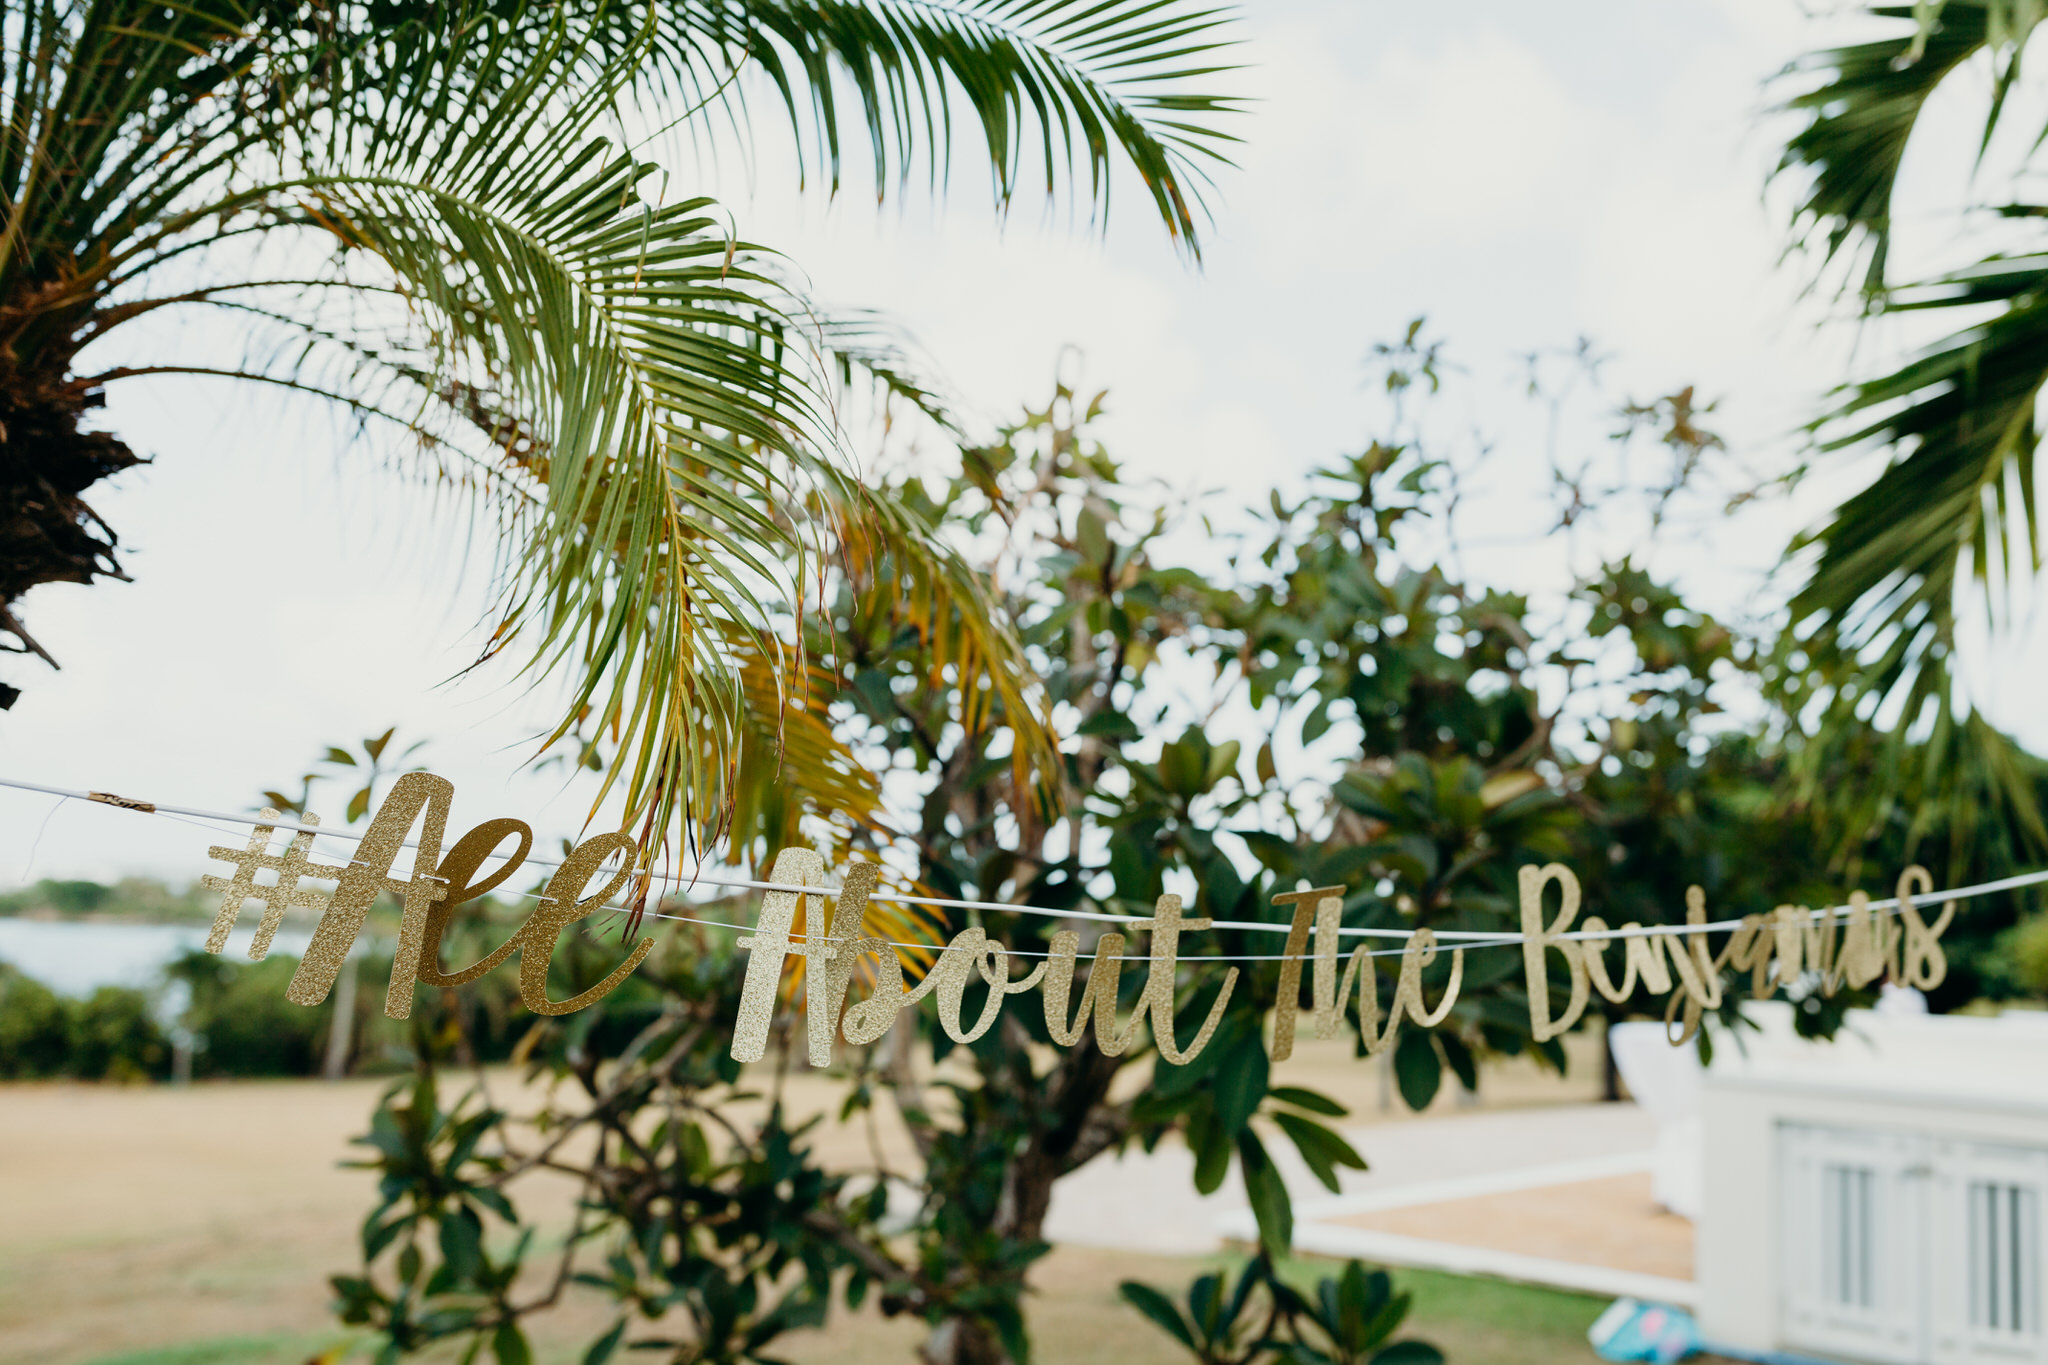 Dreamy Tropical Wedding at Beautiful Villa on St. Croix in the Virgin Islands | Christiansted | Caribbean Wedding | St. Croix Wedding | St. John Wedding | Katie May Collection Wedding Dress | Destination Honeymoon | Engagement Photos | Cruz Bay St. John | Destination Honeymoon Photos | Caribbean | Destination Wedding Photographer | Traveling Photographer | Hike to Elope | Couples Photos | Fun Couples | Elopement | Adventurous Island Elopement | Virgin Islands | Meredith Zimmerman Photography